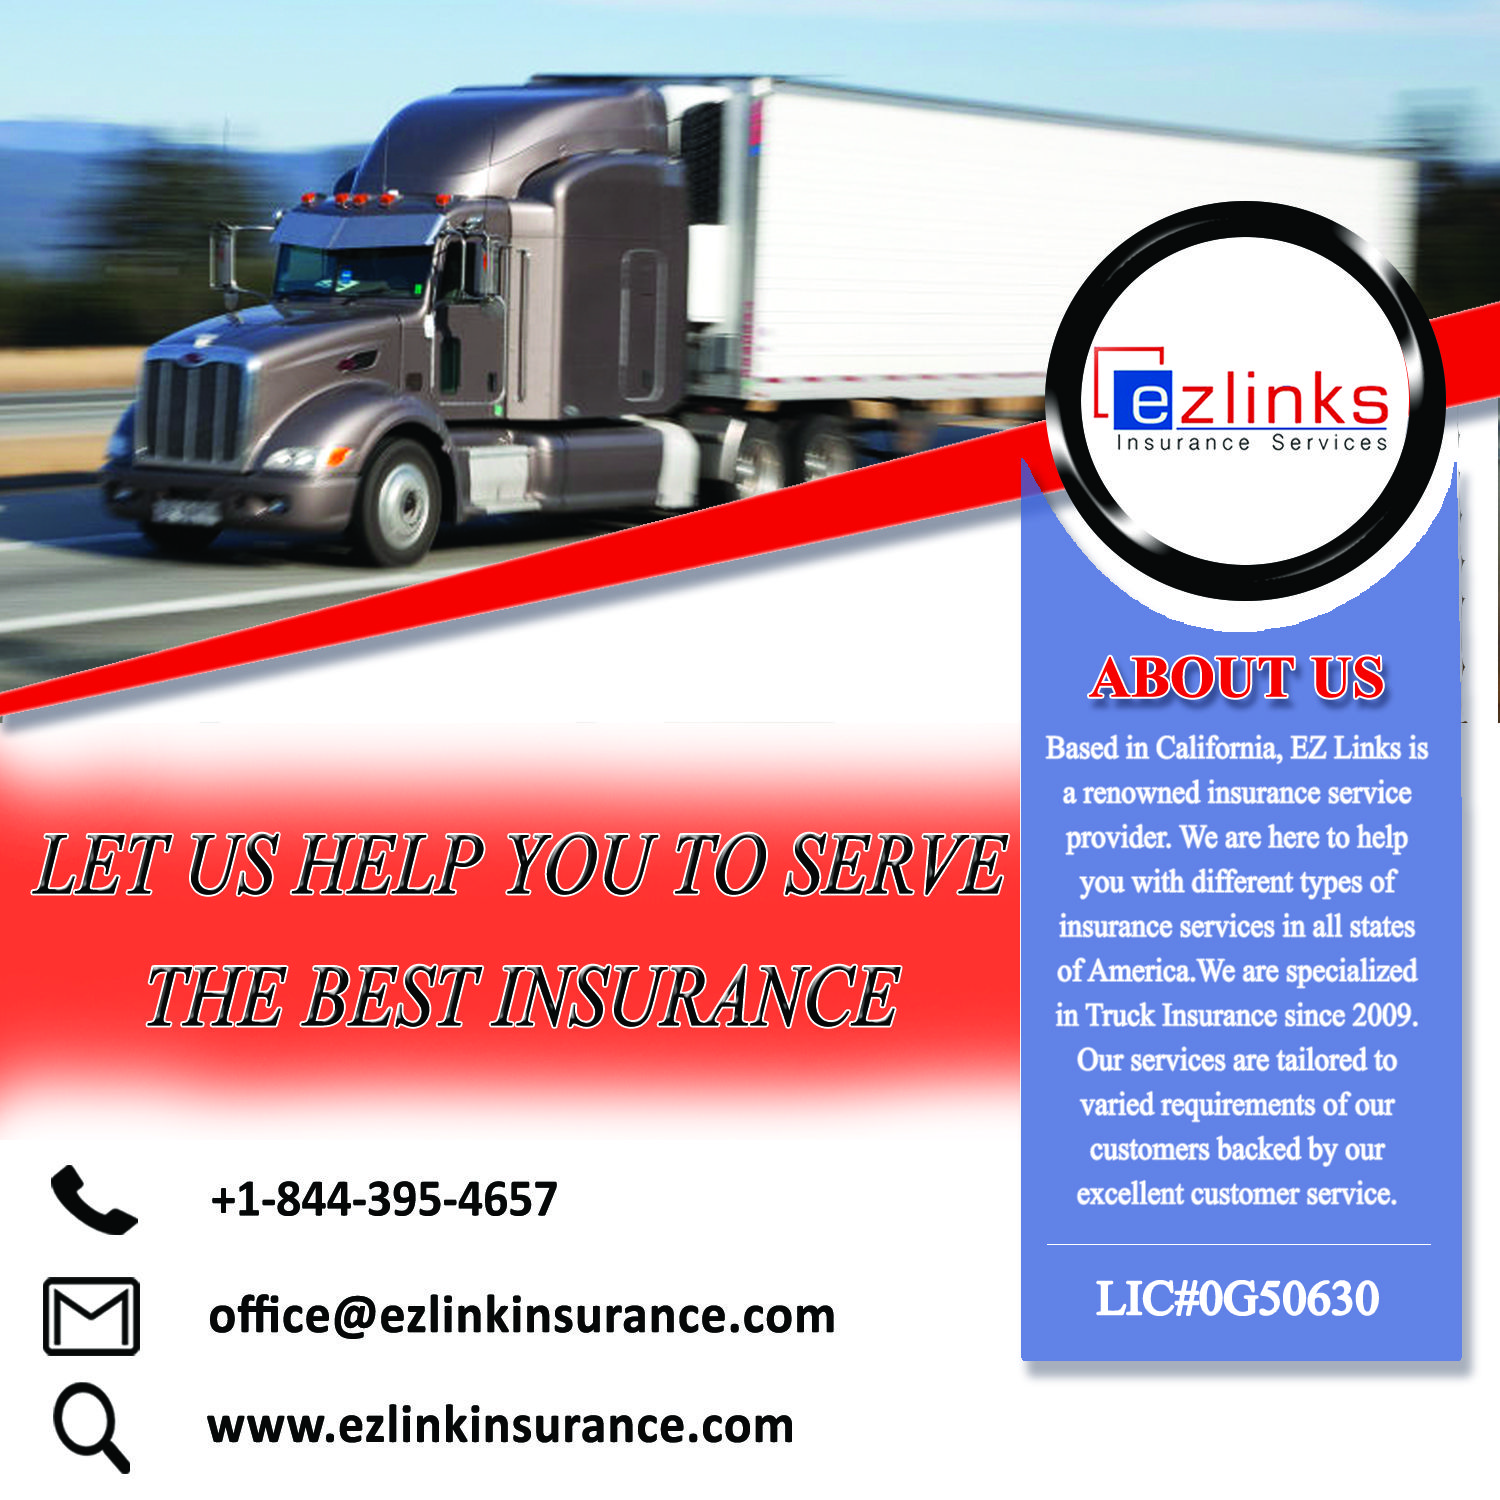 Developing Insurance Company Best Insurance Insurance